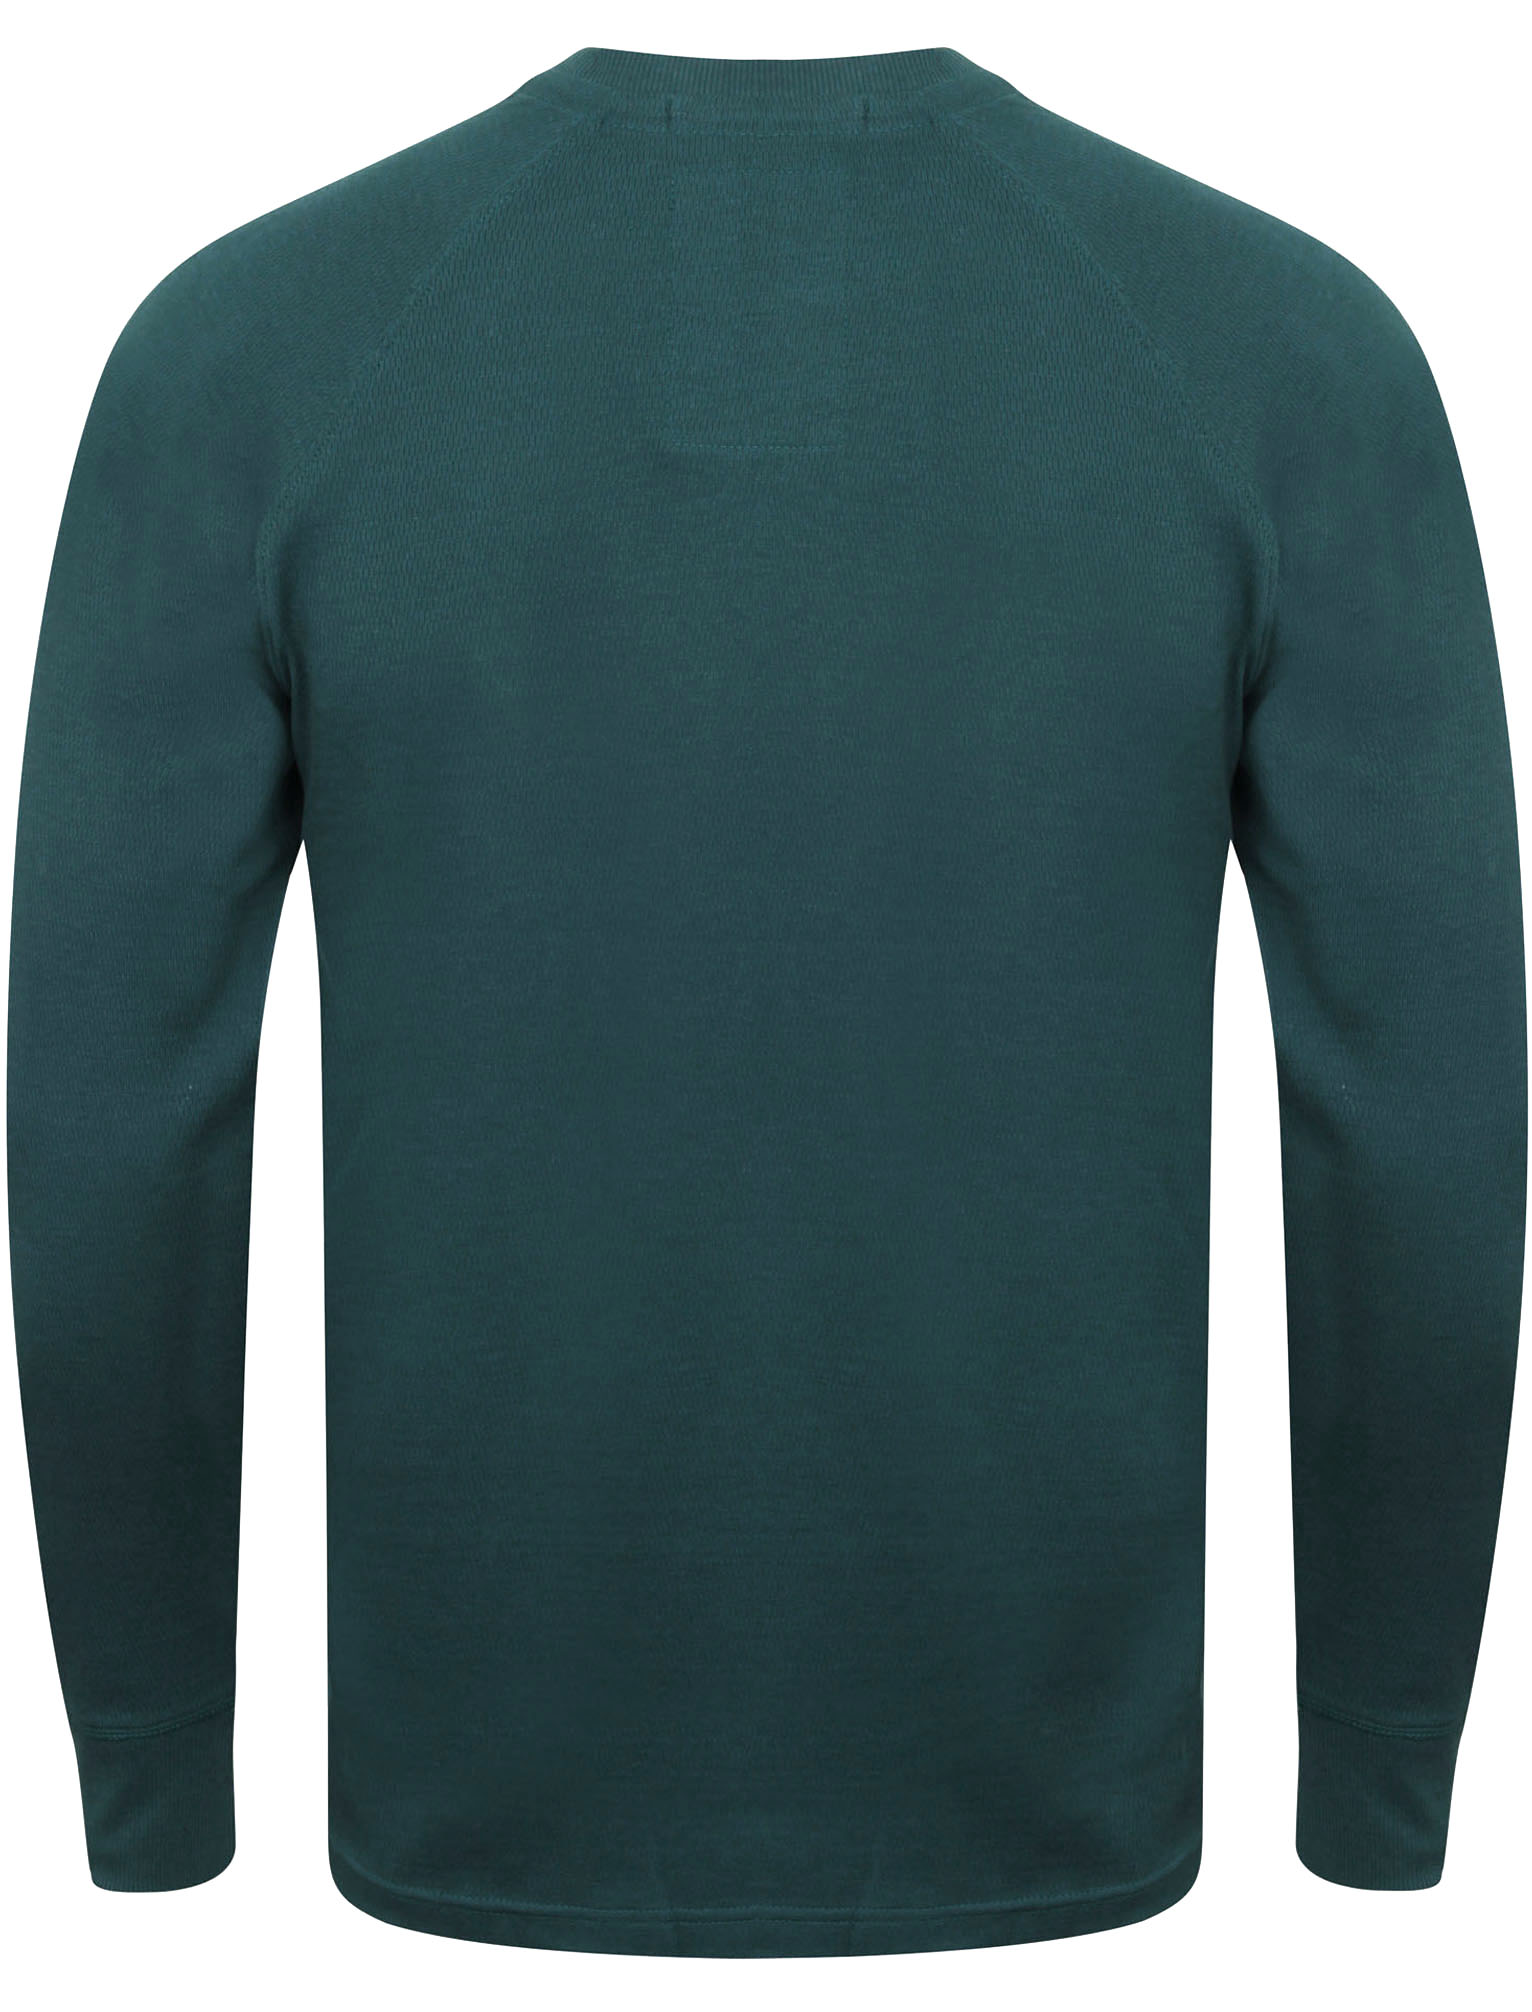 New-Mens-Tokyo-Laundry-Branded-Soft-Jersey-Long-Sleeve-Tops-T-Shirts-Size-S-XL thumbnail 29